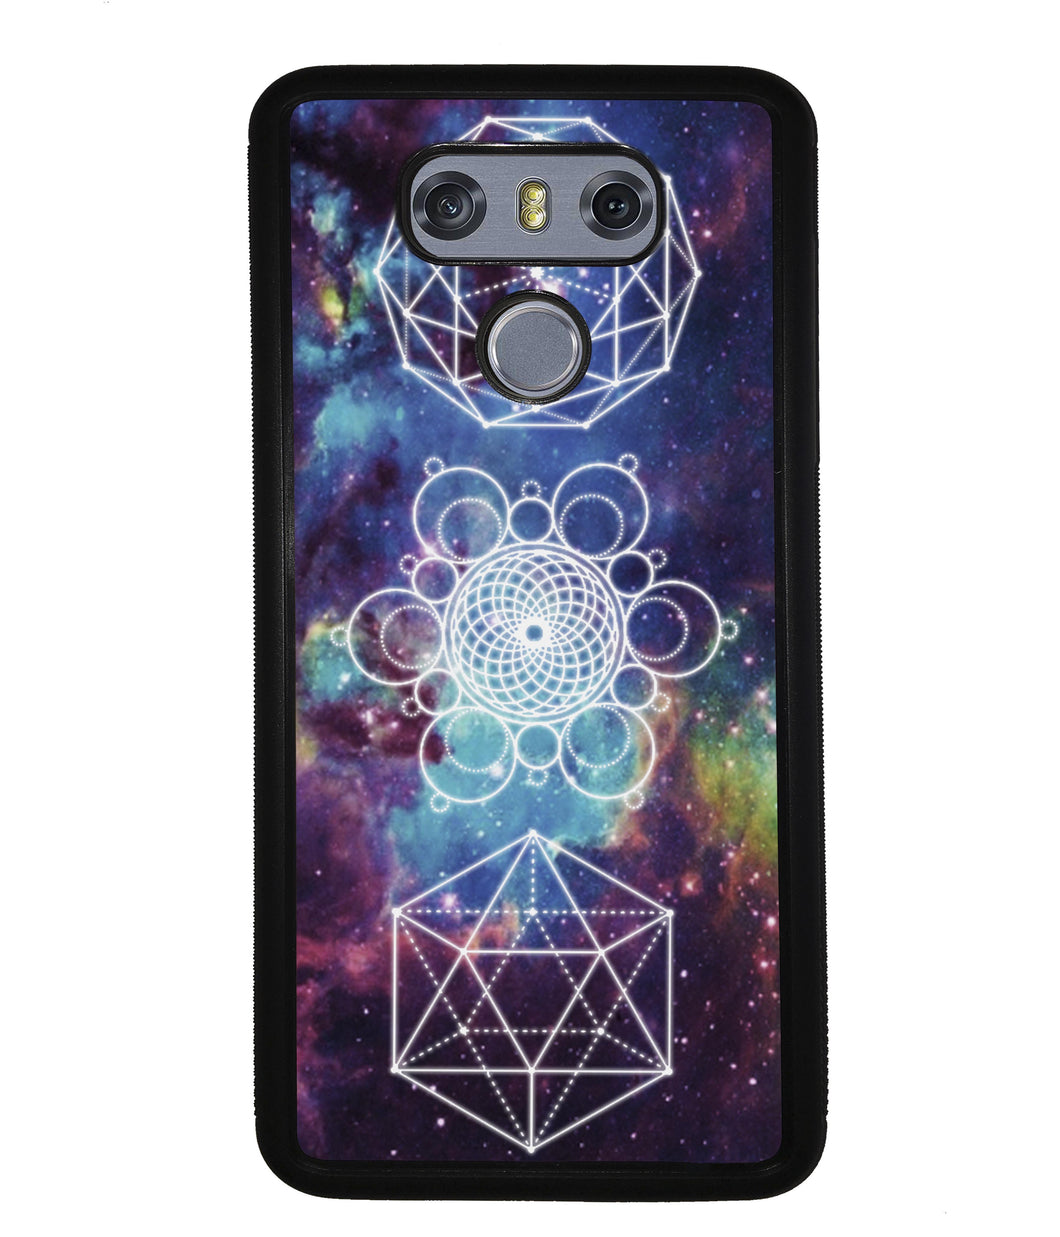 Divine Patterns Of The Universe | LG Phone Case